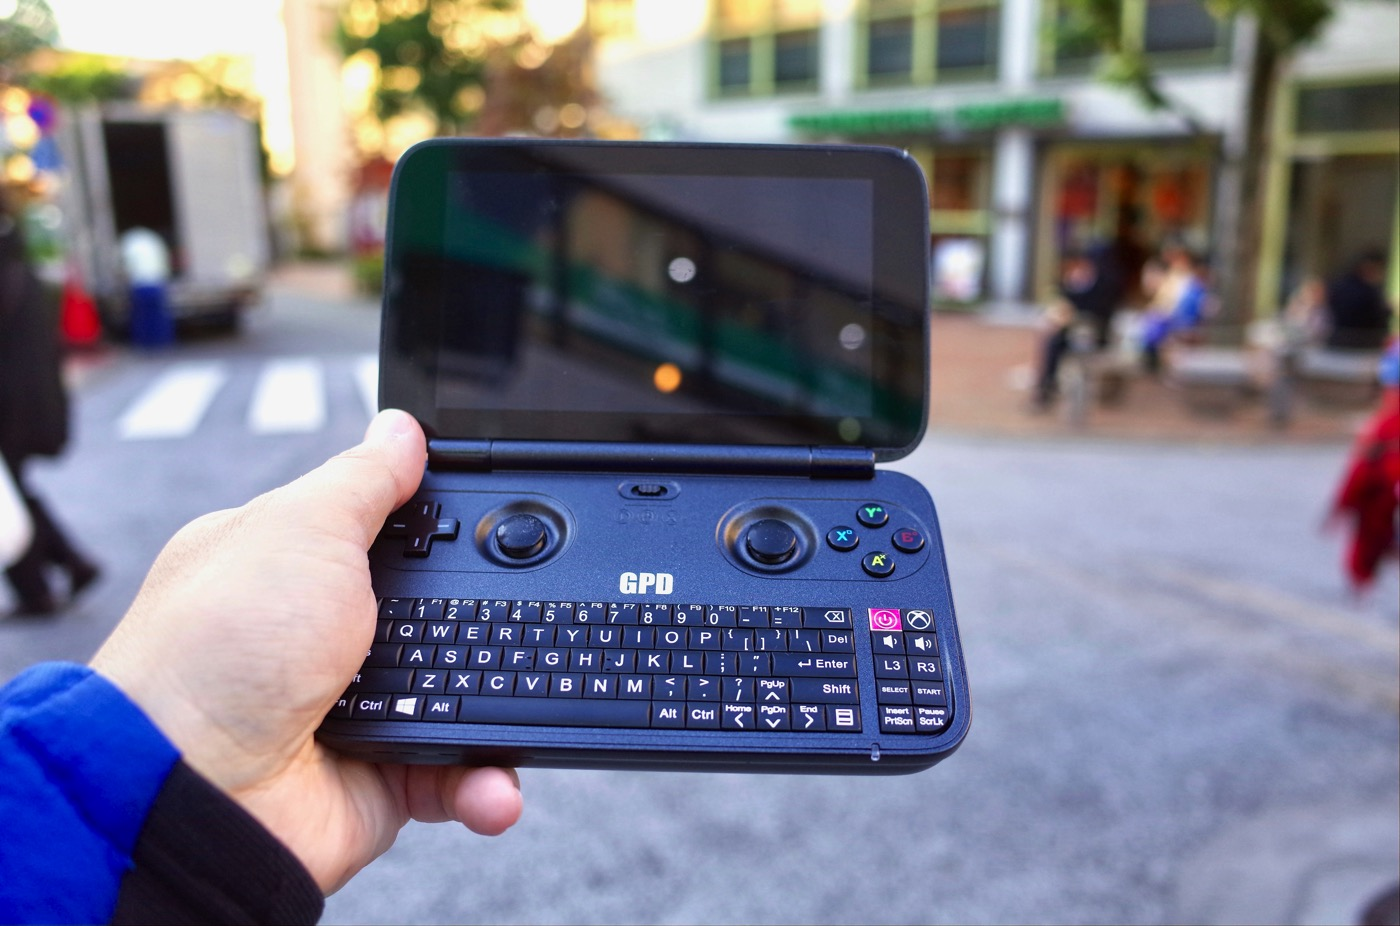 Gpd win now on sale 00004